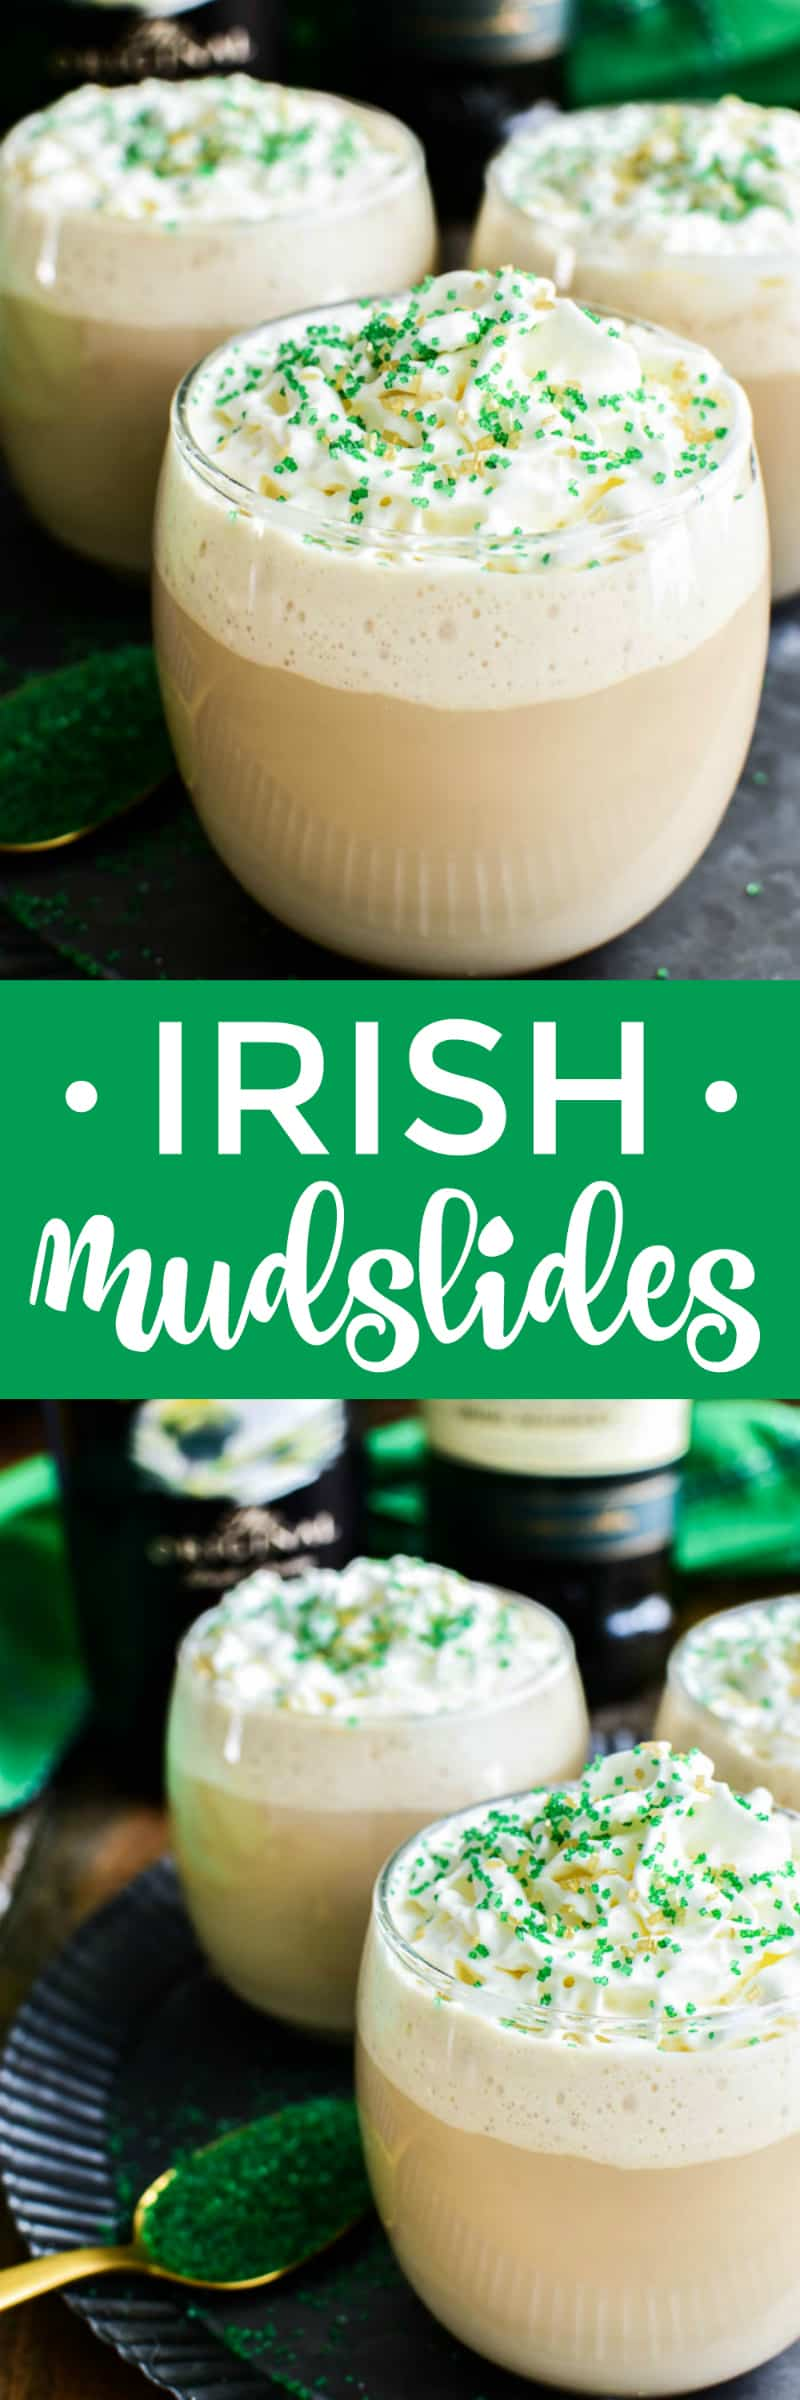 Irish Mudslides are the perfect St. Paddy's Day drink! Made with just 4 ingredients, these cocktails come together in minutes and couldn't be easier to make. Ideal for St. Patrick's Day parties, parades, after dinner drinks, or even shots ...if you love Mudslides, you're sure to enjoy this fun Irish twist!